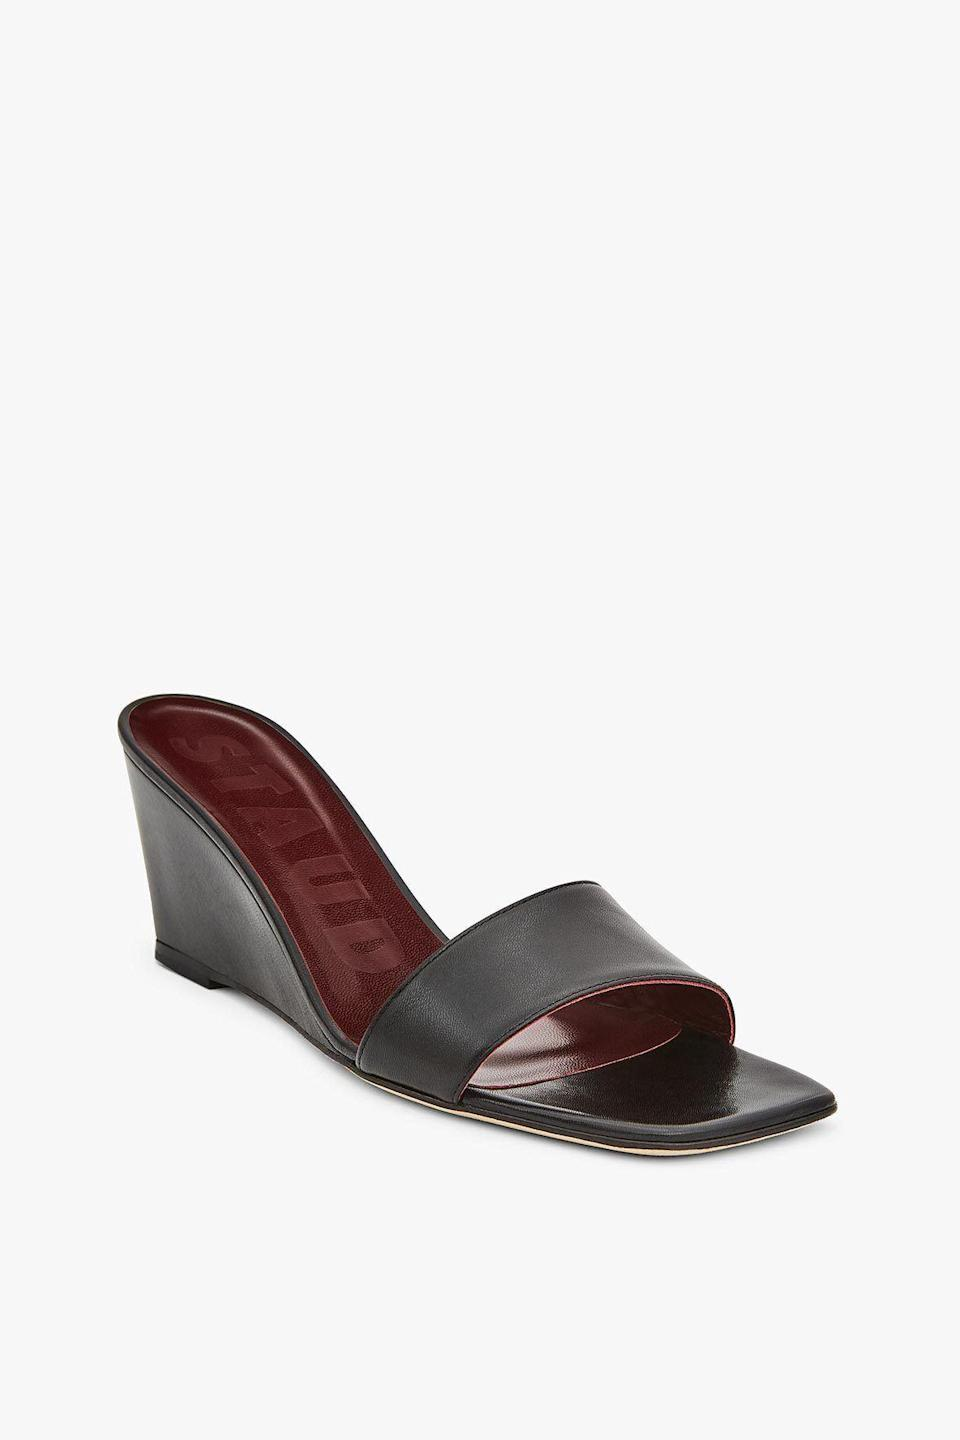 """<br> <br> <strong>Staud</strong> Billie Wedge, $, available at <a href=""""https://go.skimresources.com/?id=30283X879131&url=https%3A%2F%2Fstaud.clothing%2Fproducts%2Fbillie-wedge-black-1%3Fvariant%3D31210518708305"""" rel=""""nofollow noopener"""" target=""""_blank"""" data-ylk=""""slk:Staud"""" class=""""link rapid-noclick-resp"""">Staud</a>"""